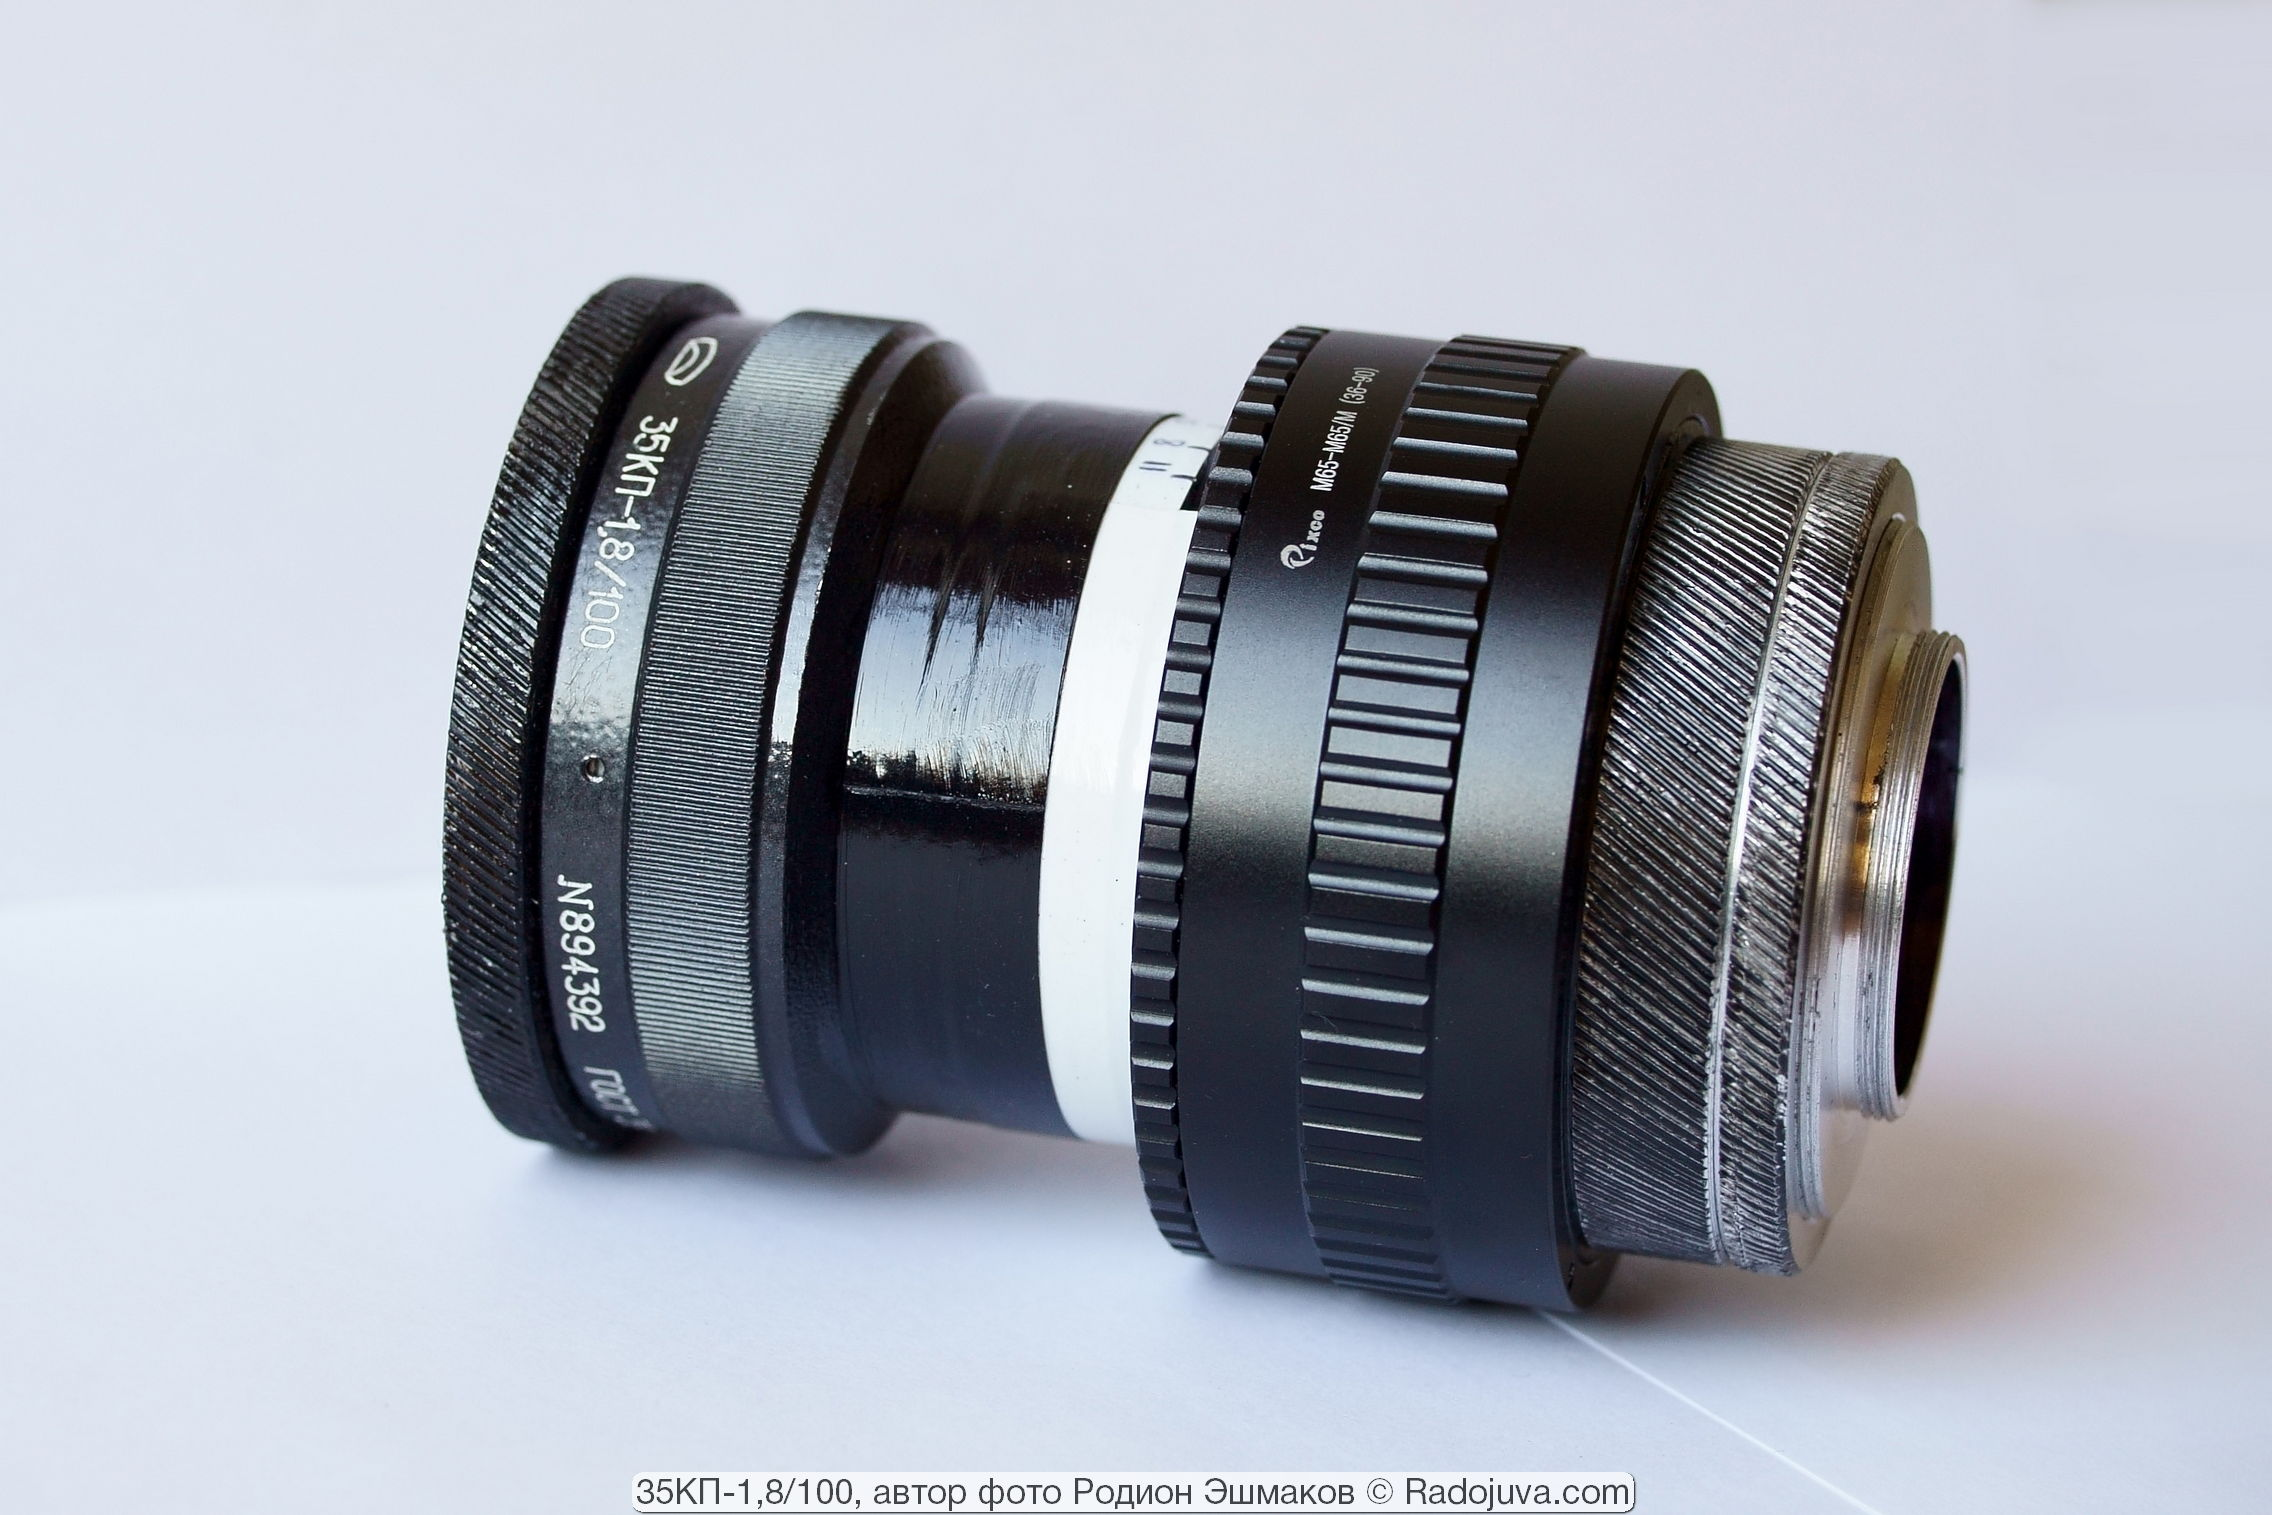 Lens assembly when focusing at infinity.